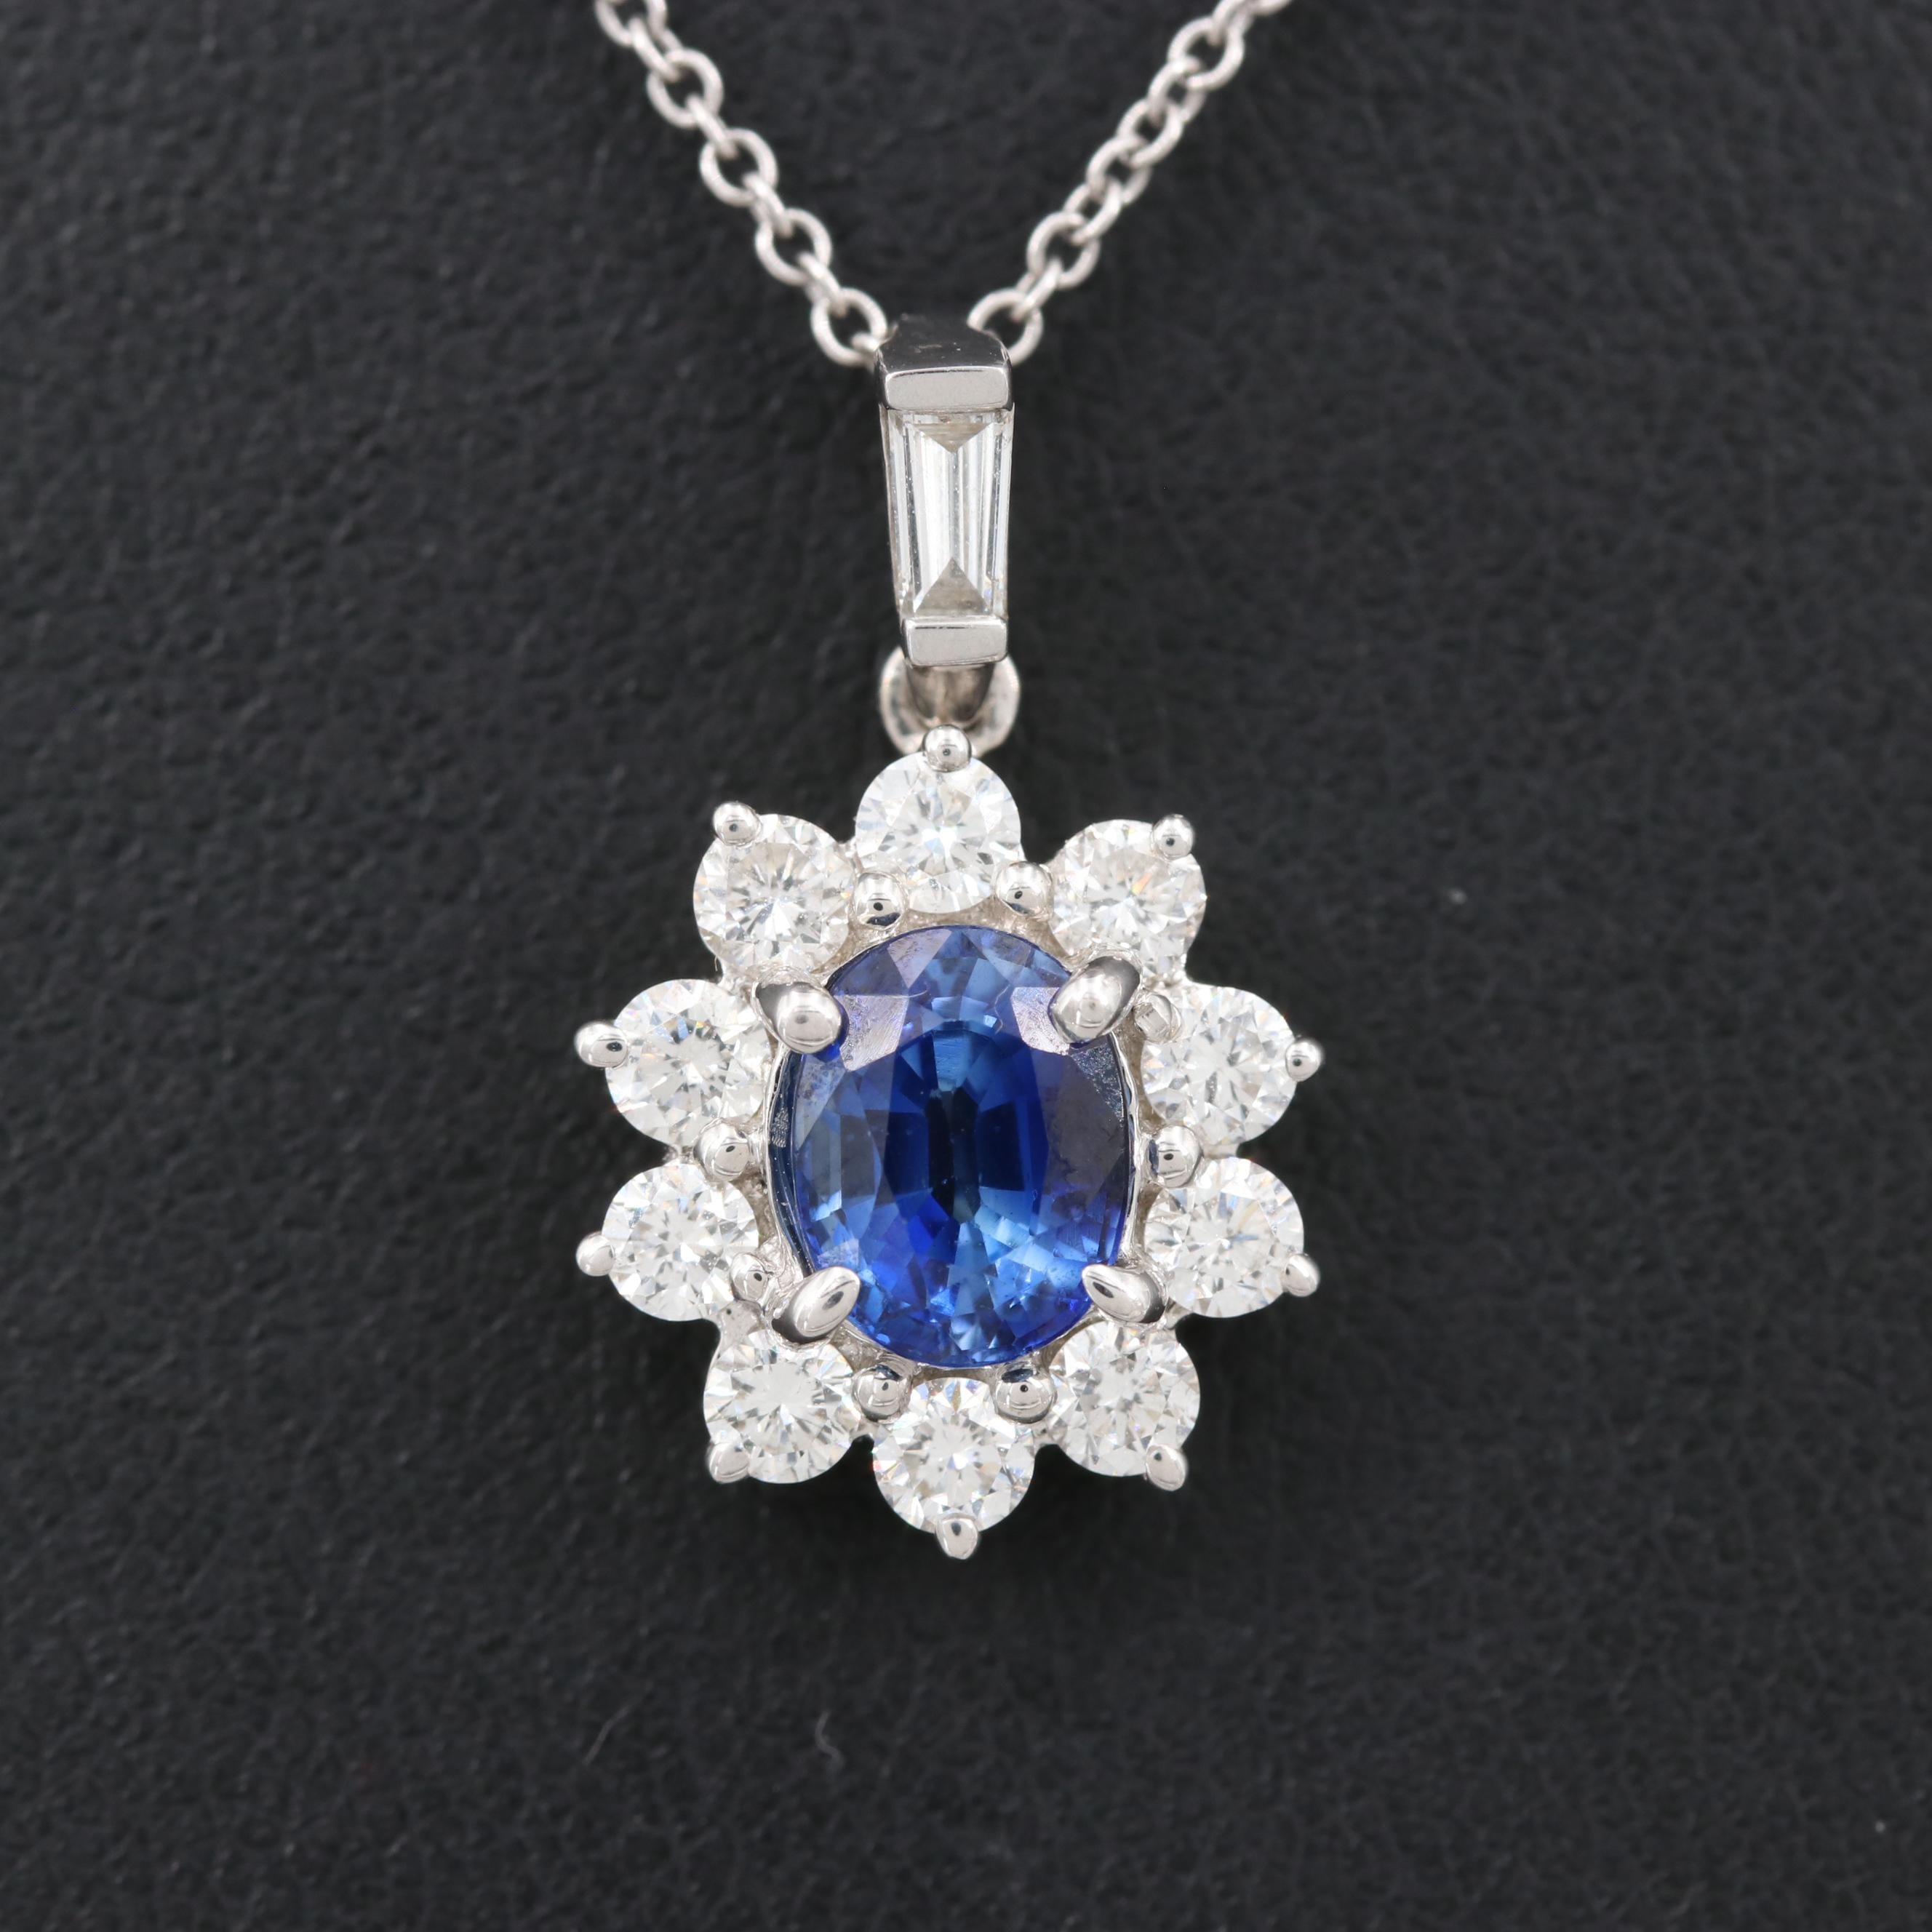 18K Gold 1.00 CT Blue Sapphire and Diamond Pendant on 14K White Gold Chain